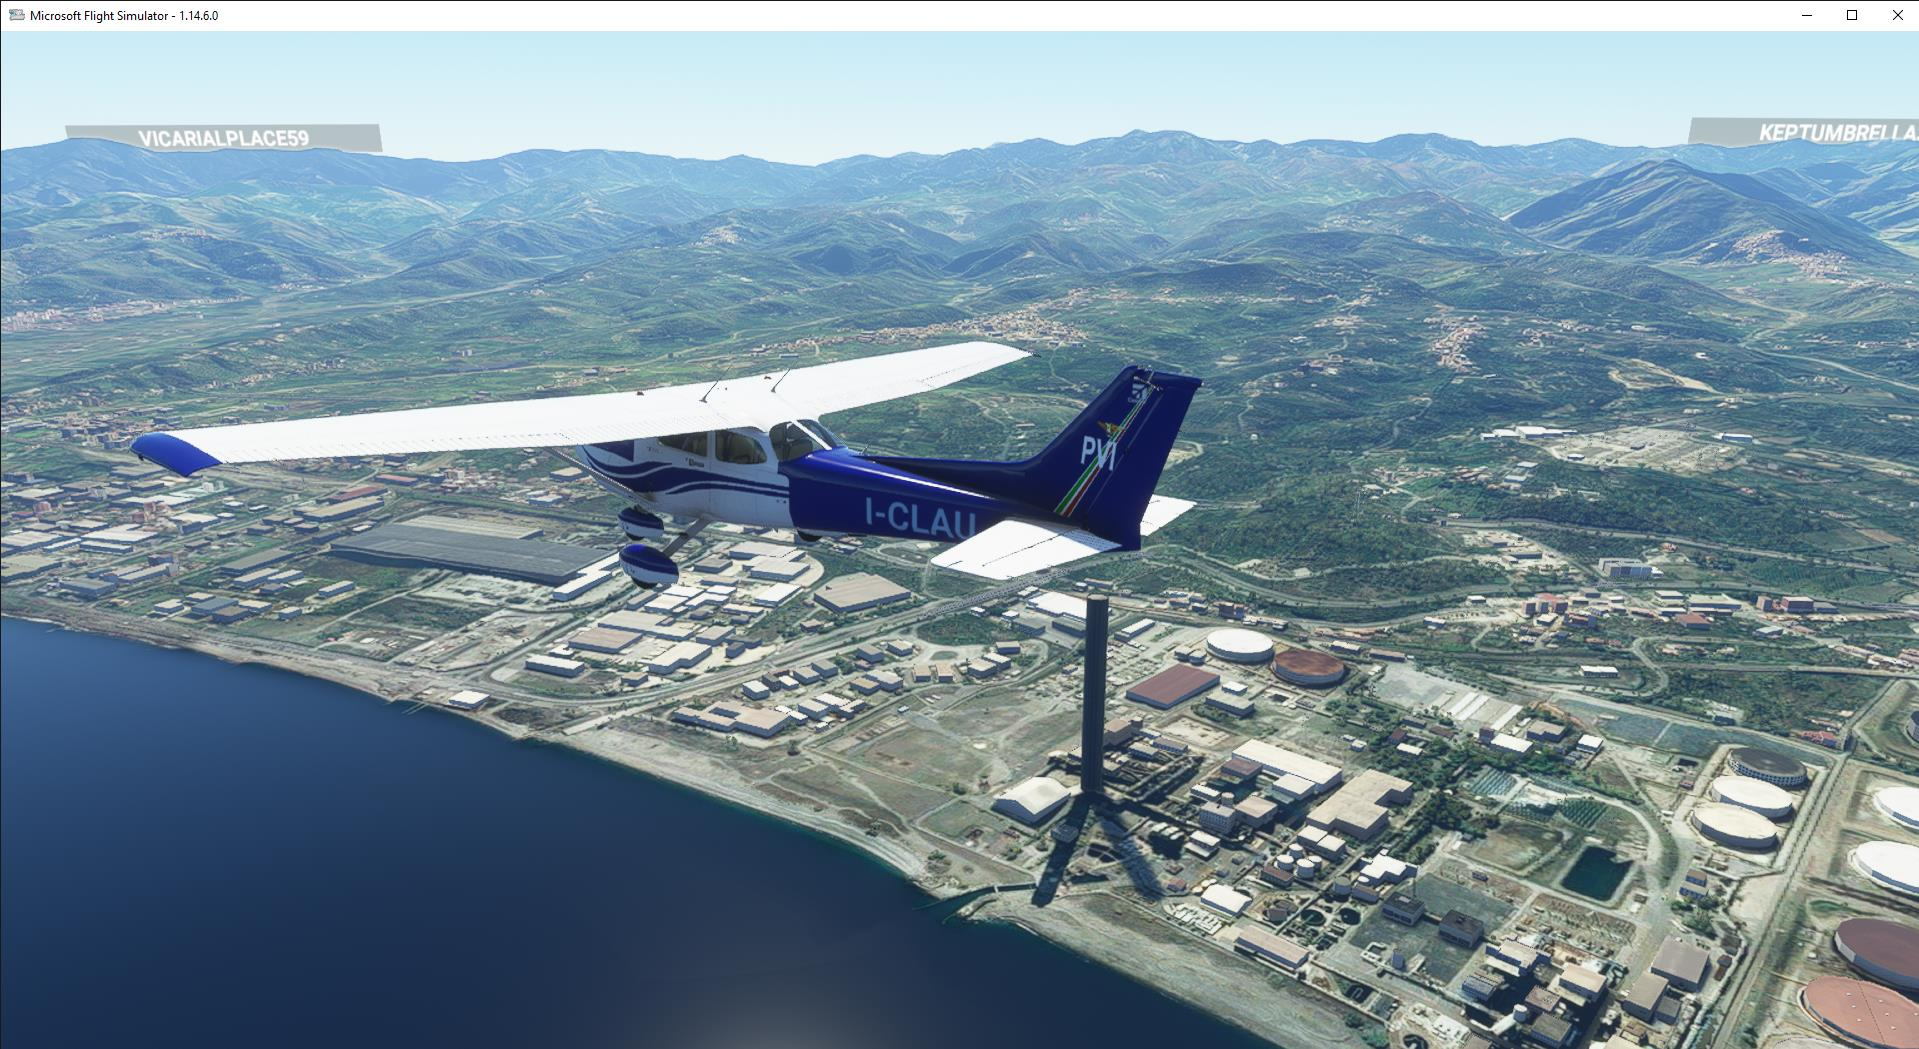 https://vivendobyte.blob.core.windows.net/59034/Microsoft Flight Simulator - 1.14.6.0 05_04_2021 22_27_11.jpg